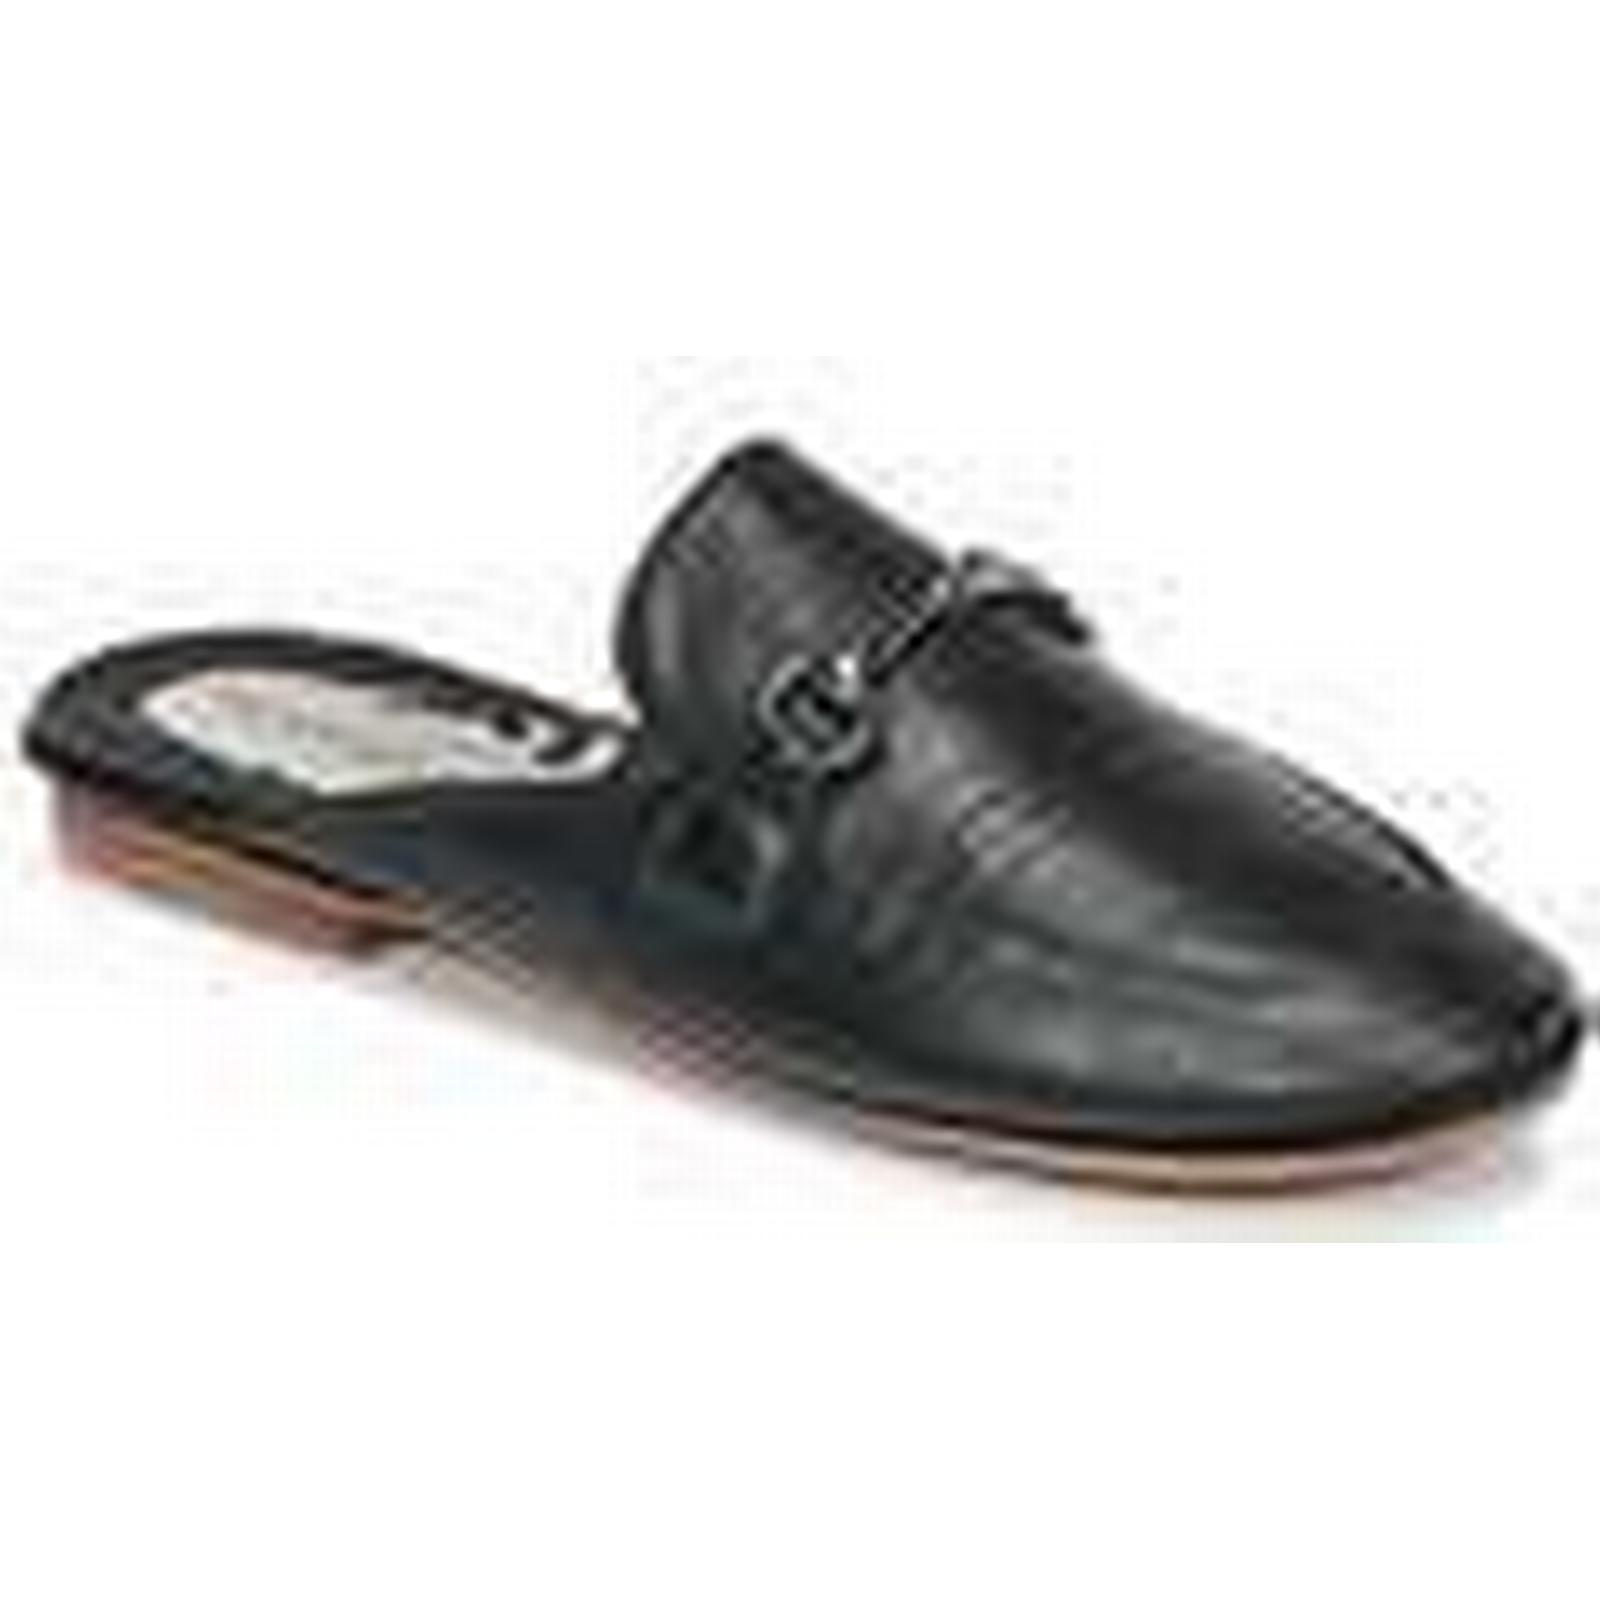 Musse   Cloud  SABRY  Shoes women's Mules / Casual Shoes  in Black 4cf27a